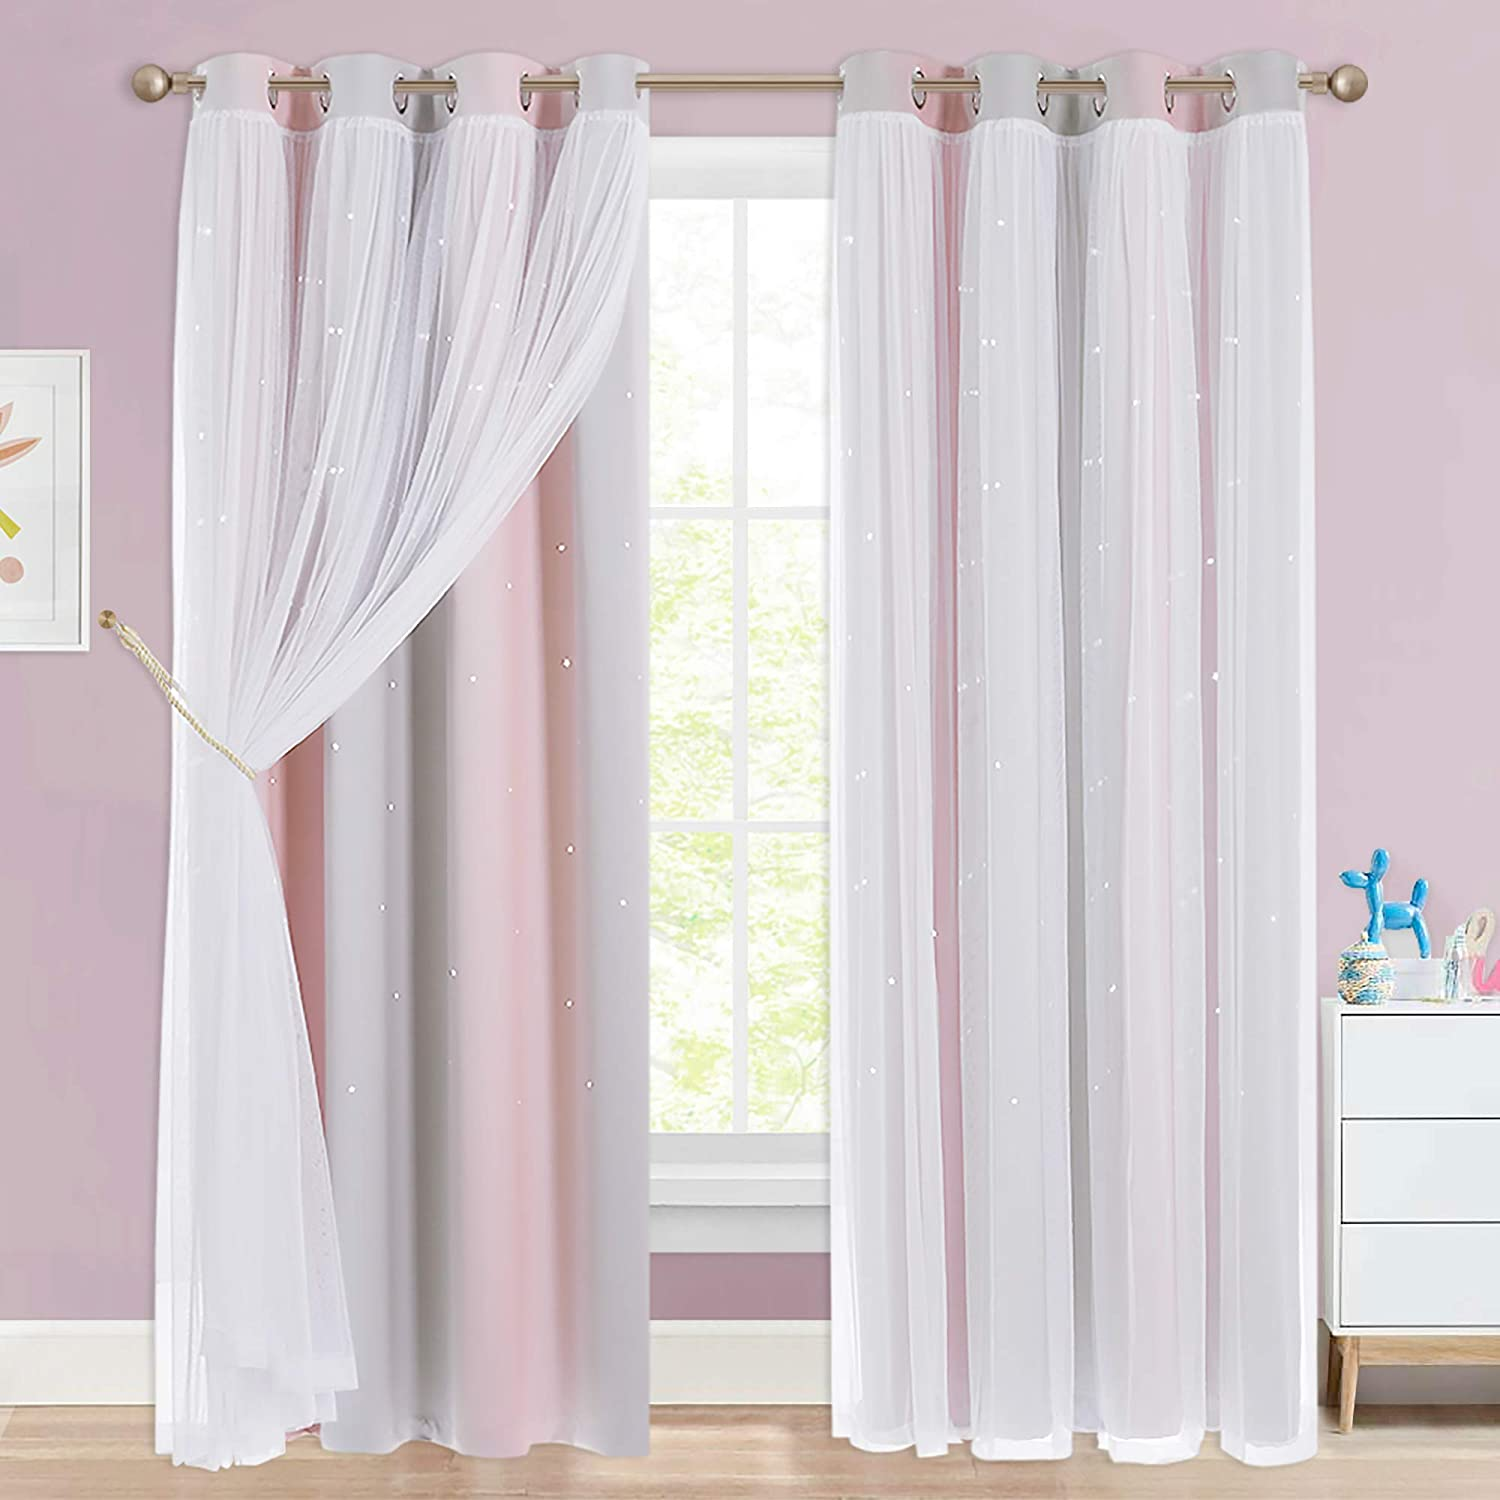 NICETOWN Kids Curtains 95 Long, Romantic Layered Double-Deck Window Dressing for Sliding/Patio Door, Baby Girl Nursery Decor (Pink & Grey, 1 Pair,52 inches W, Tie Backs Included)